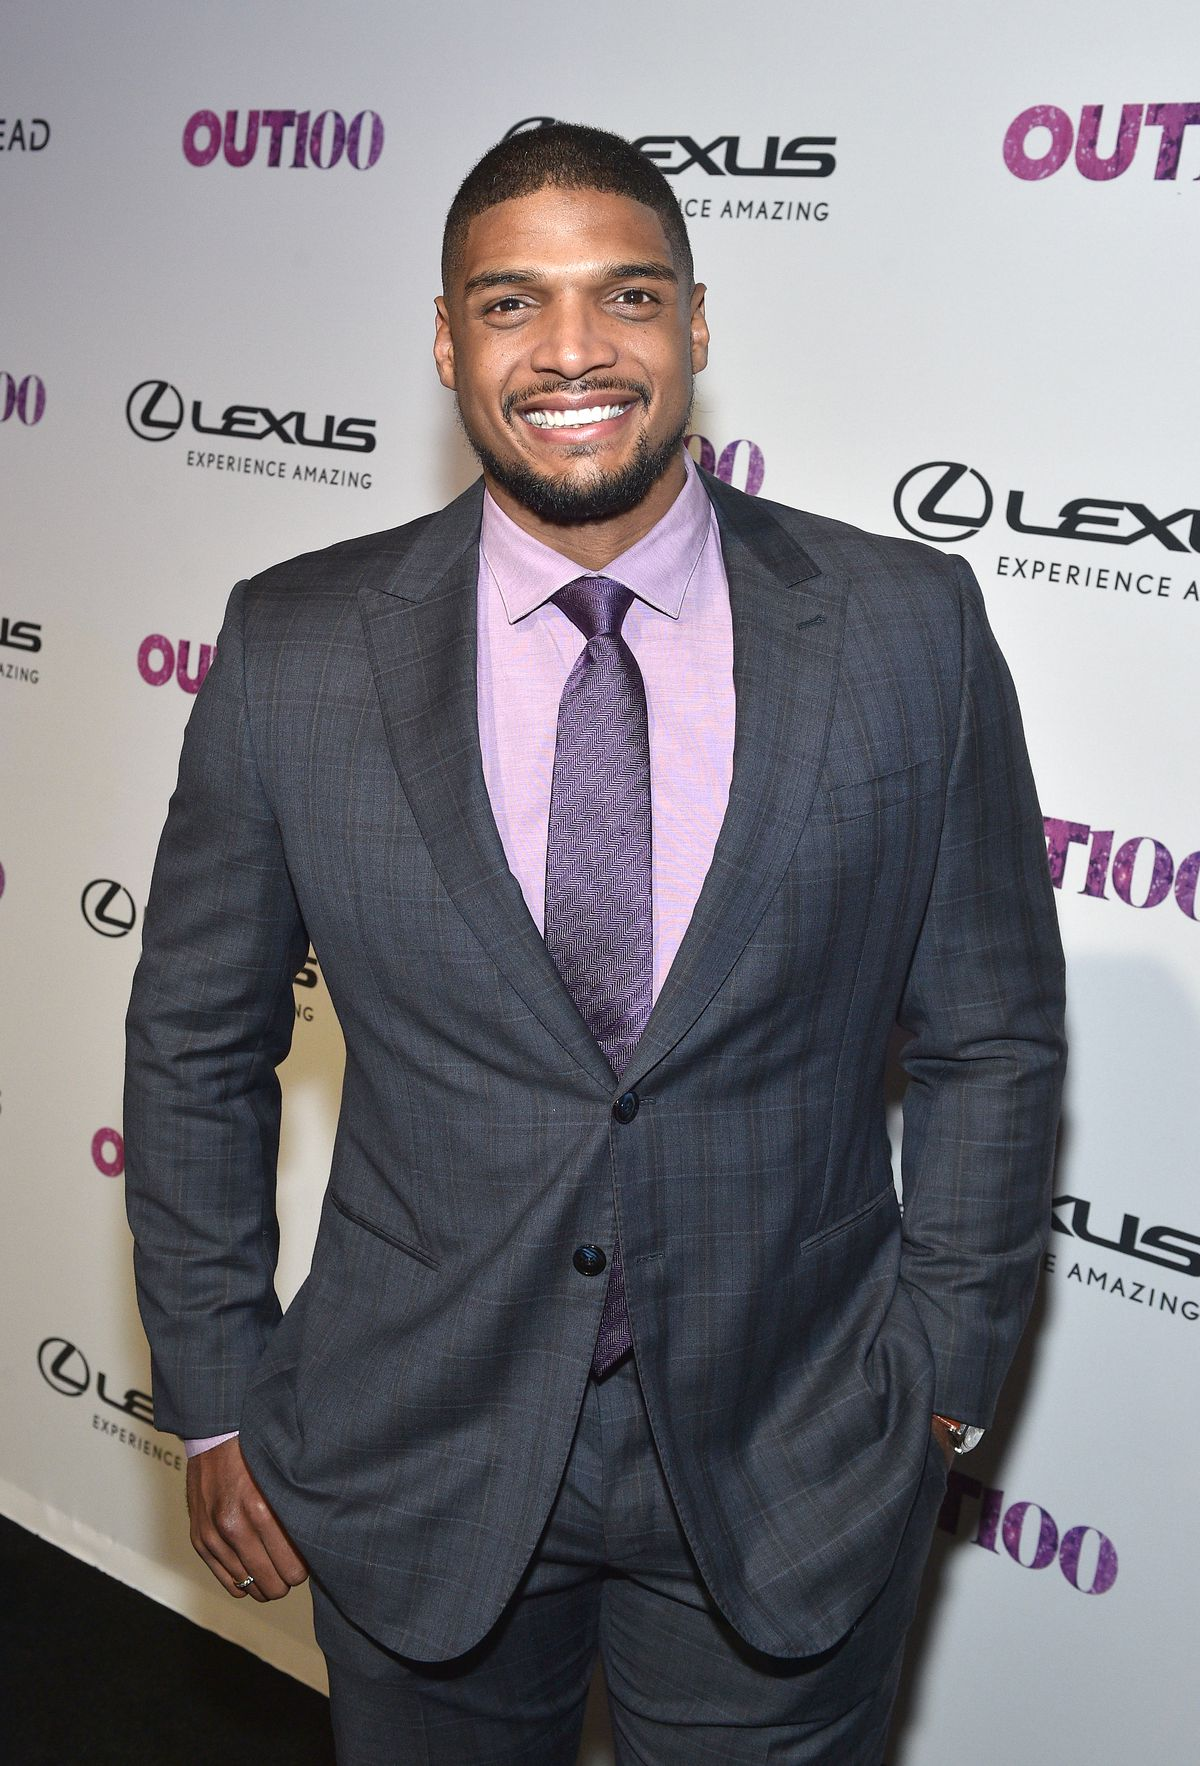 Michael Sam dressed in a suit and tie appears at an Out Magazine event.